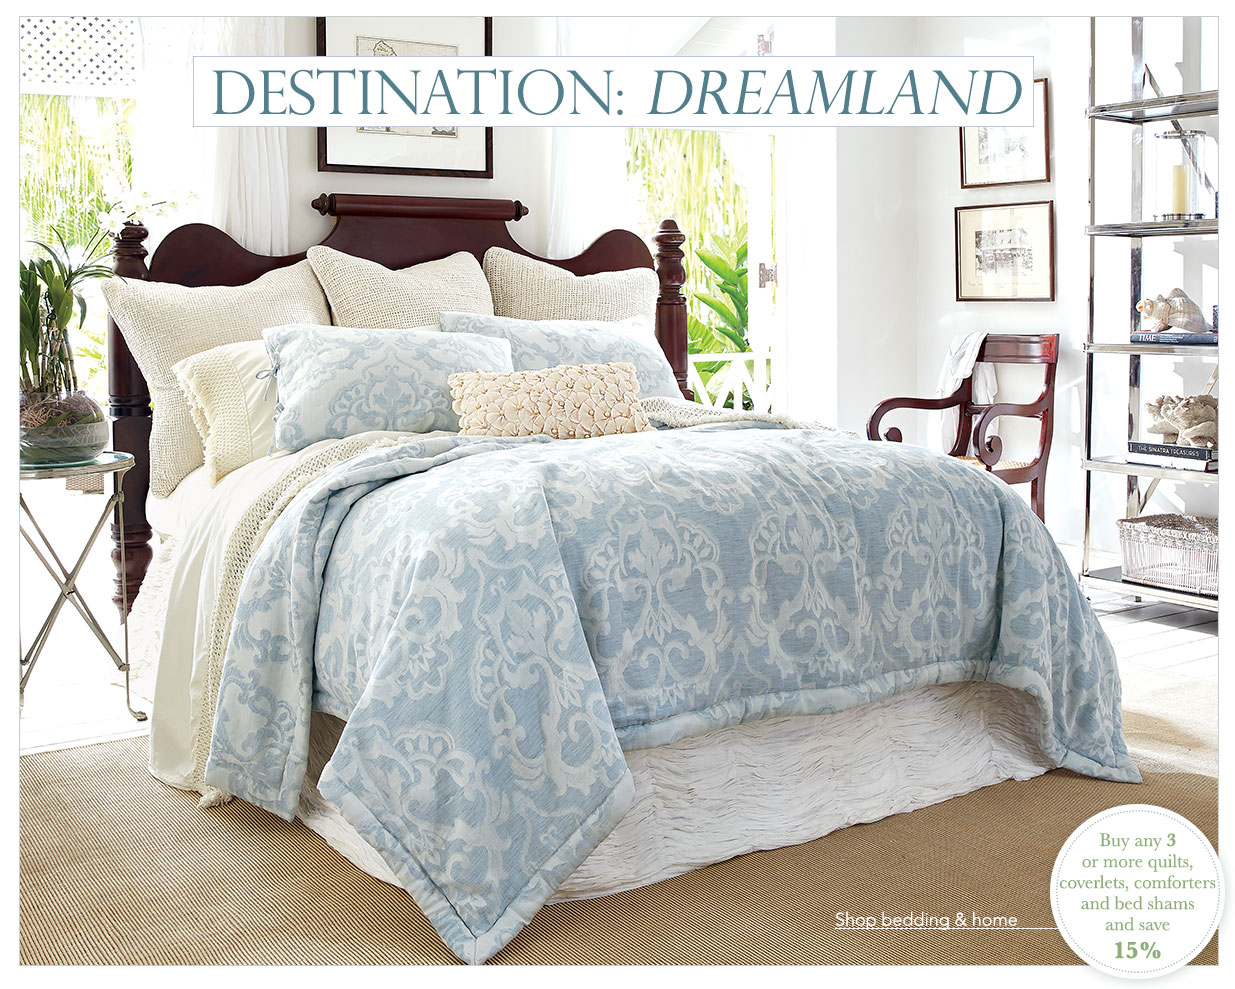 Shop home and bedding